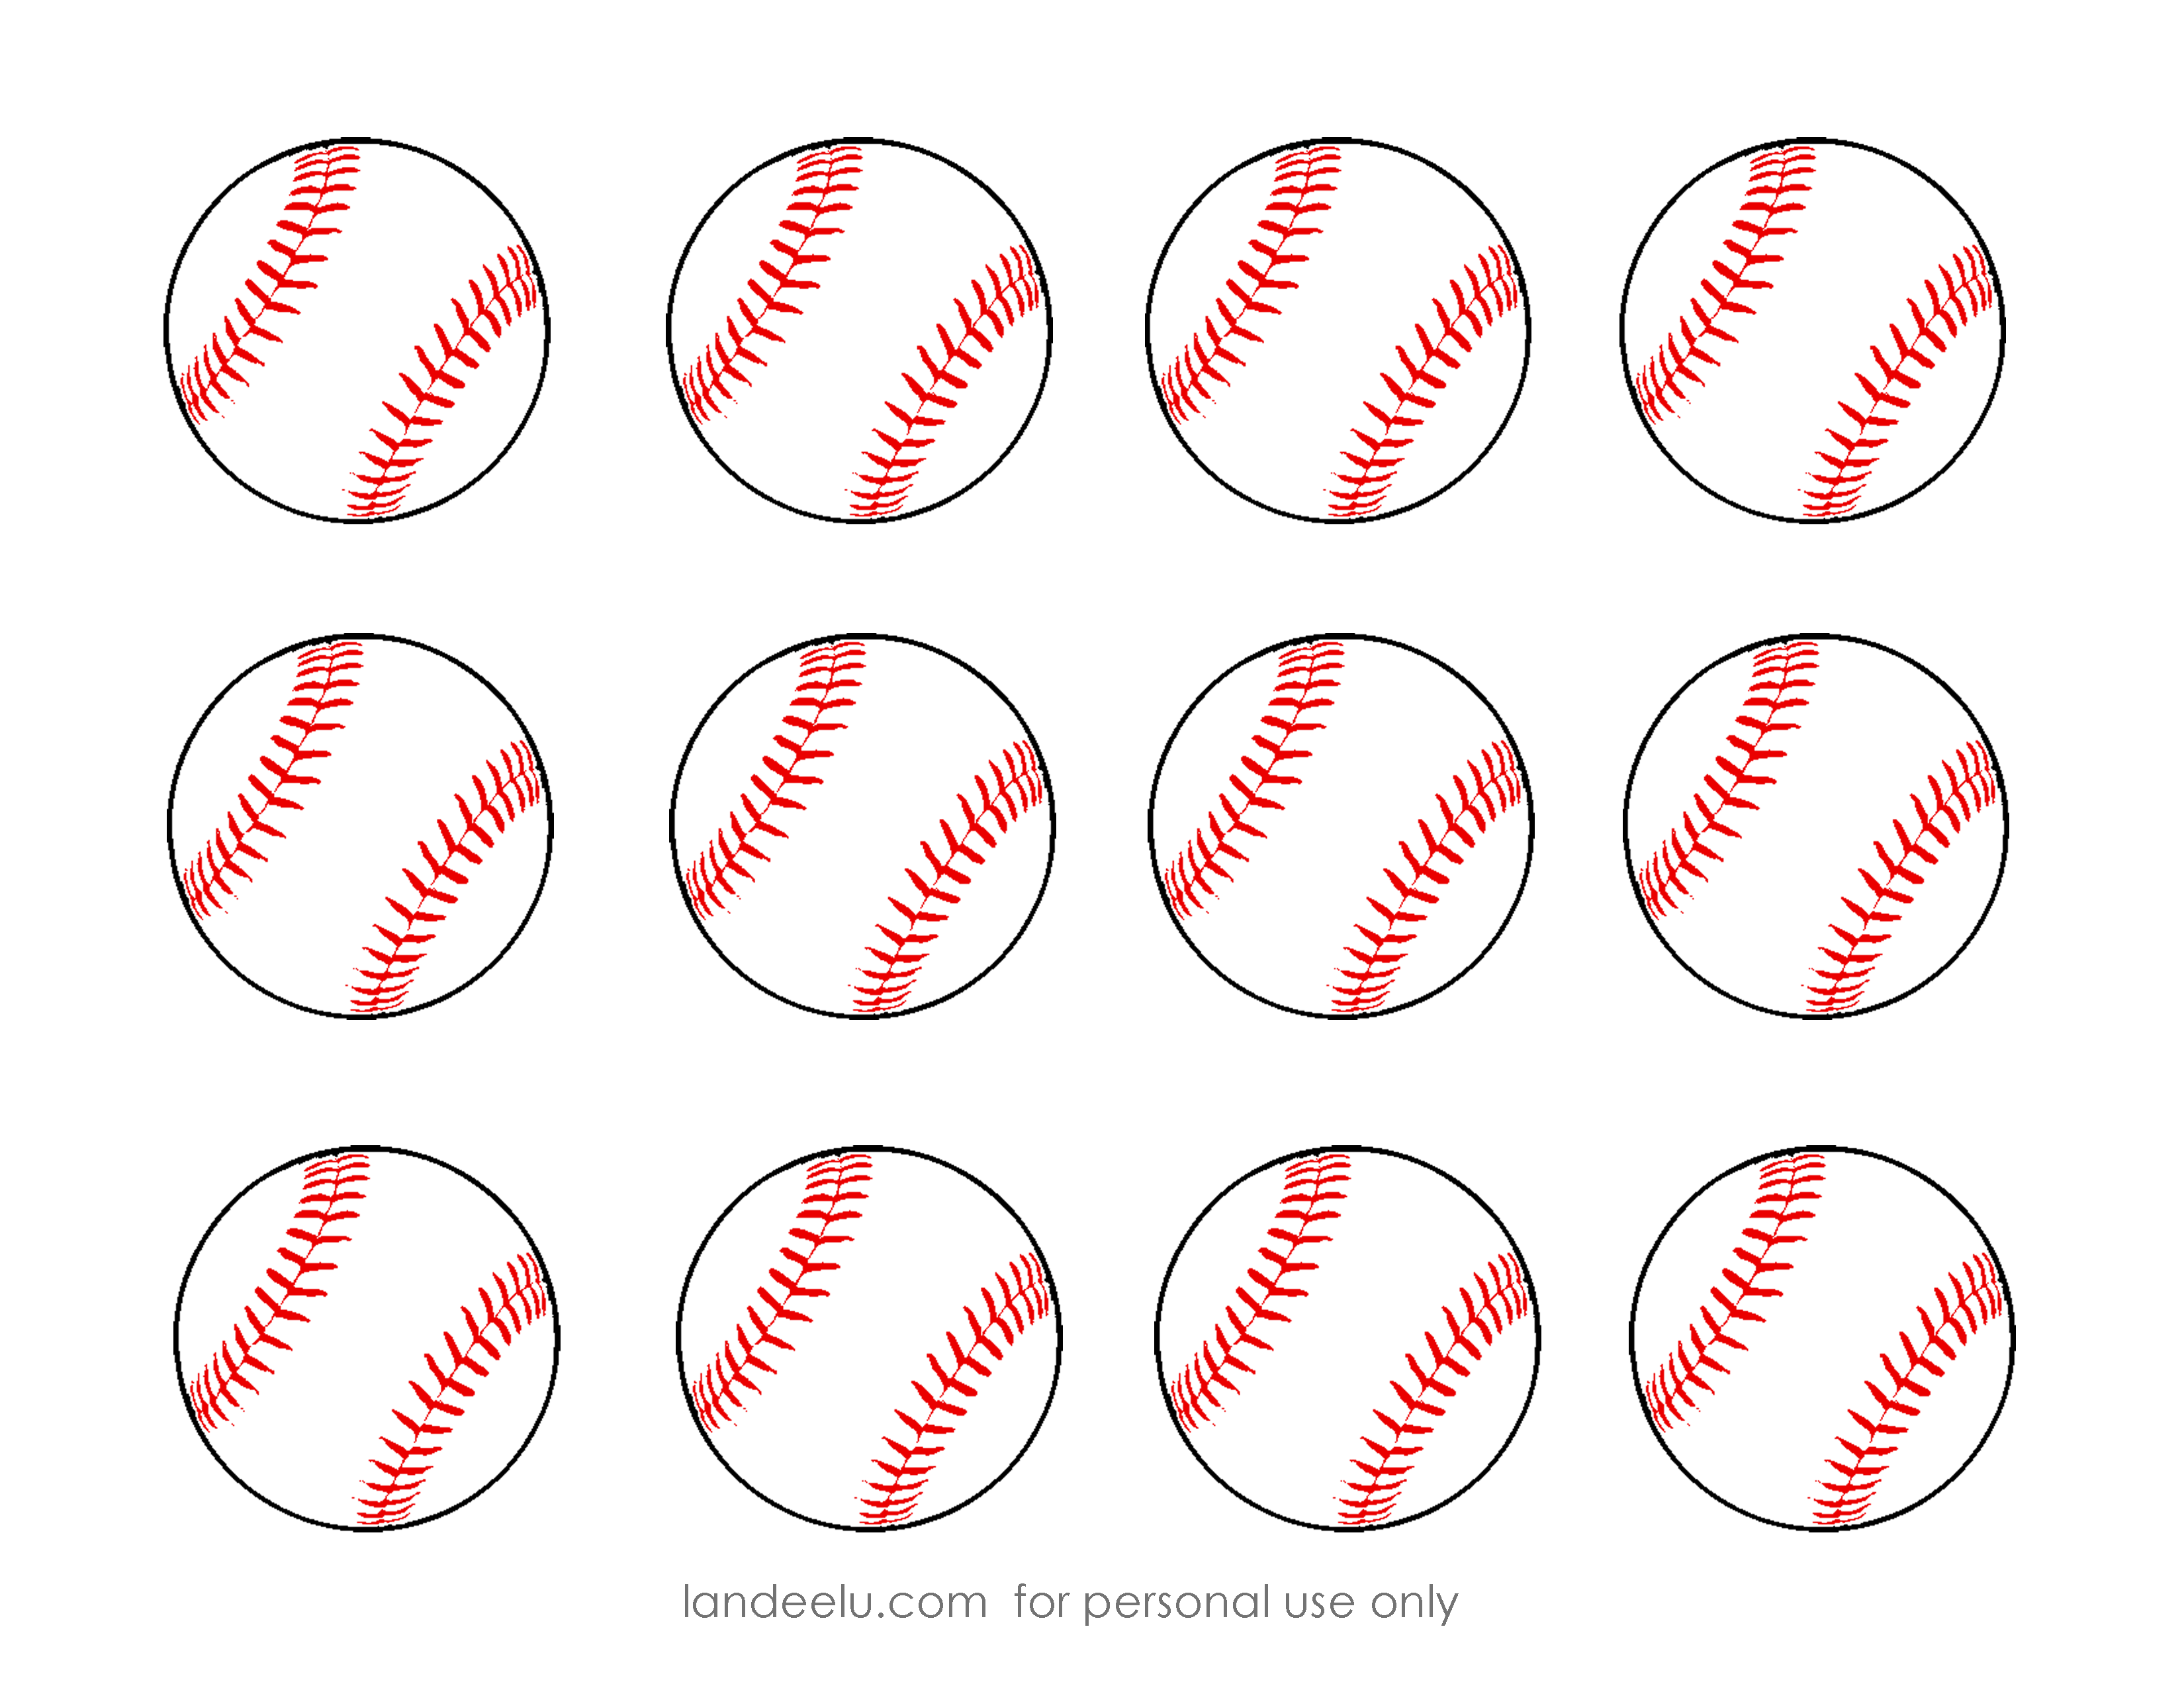 medium resolution of free printable baseball clip art images inch circle punch or scissors